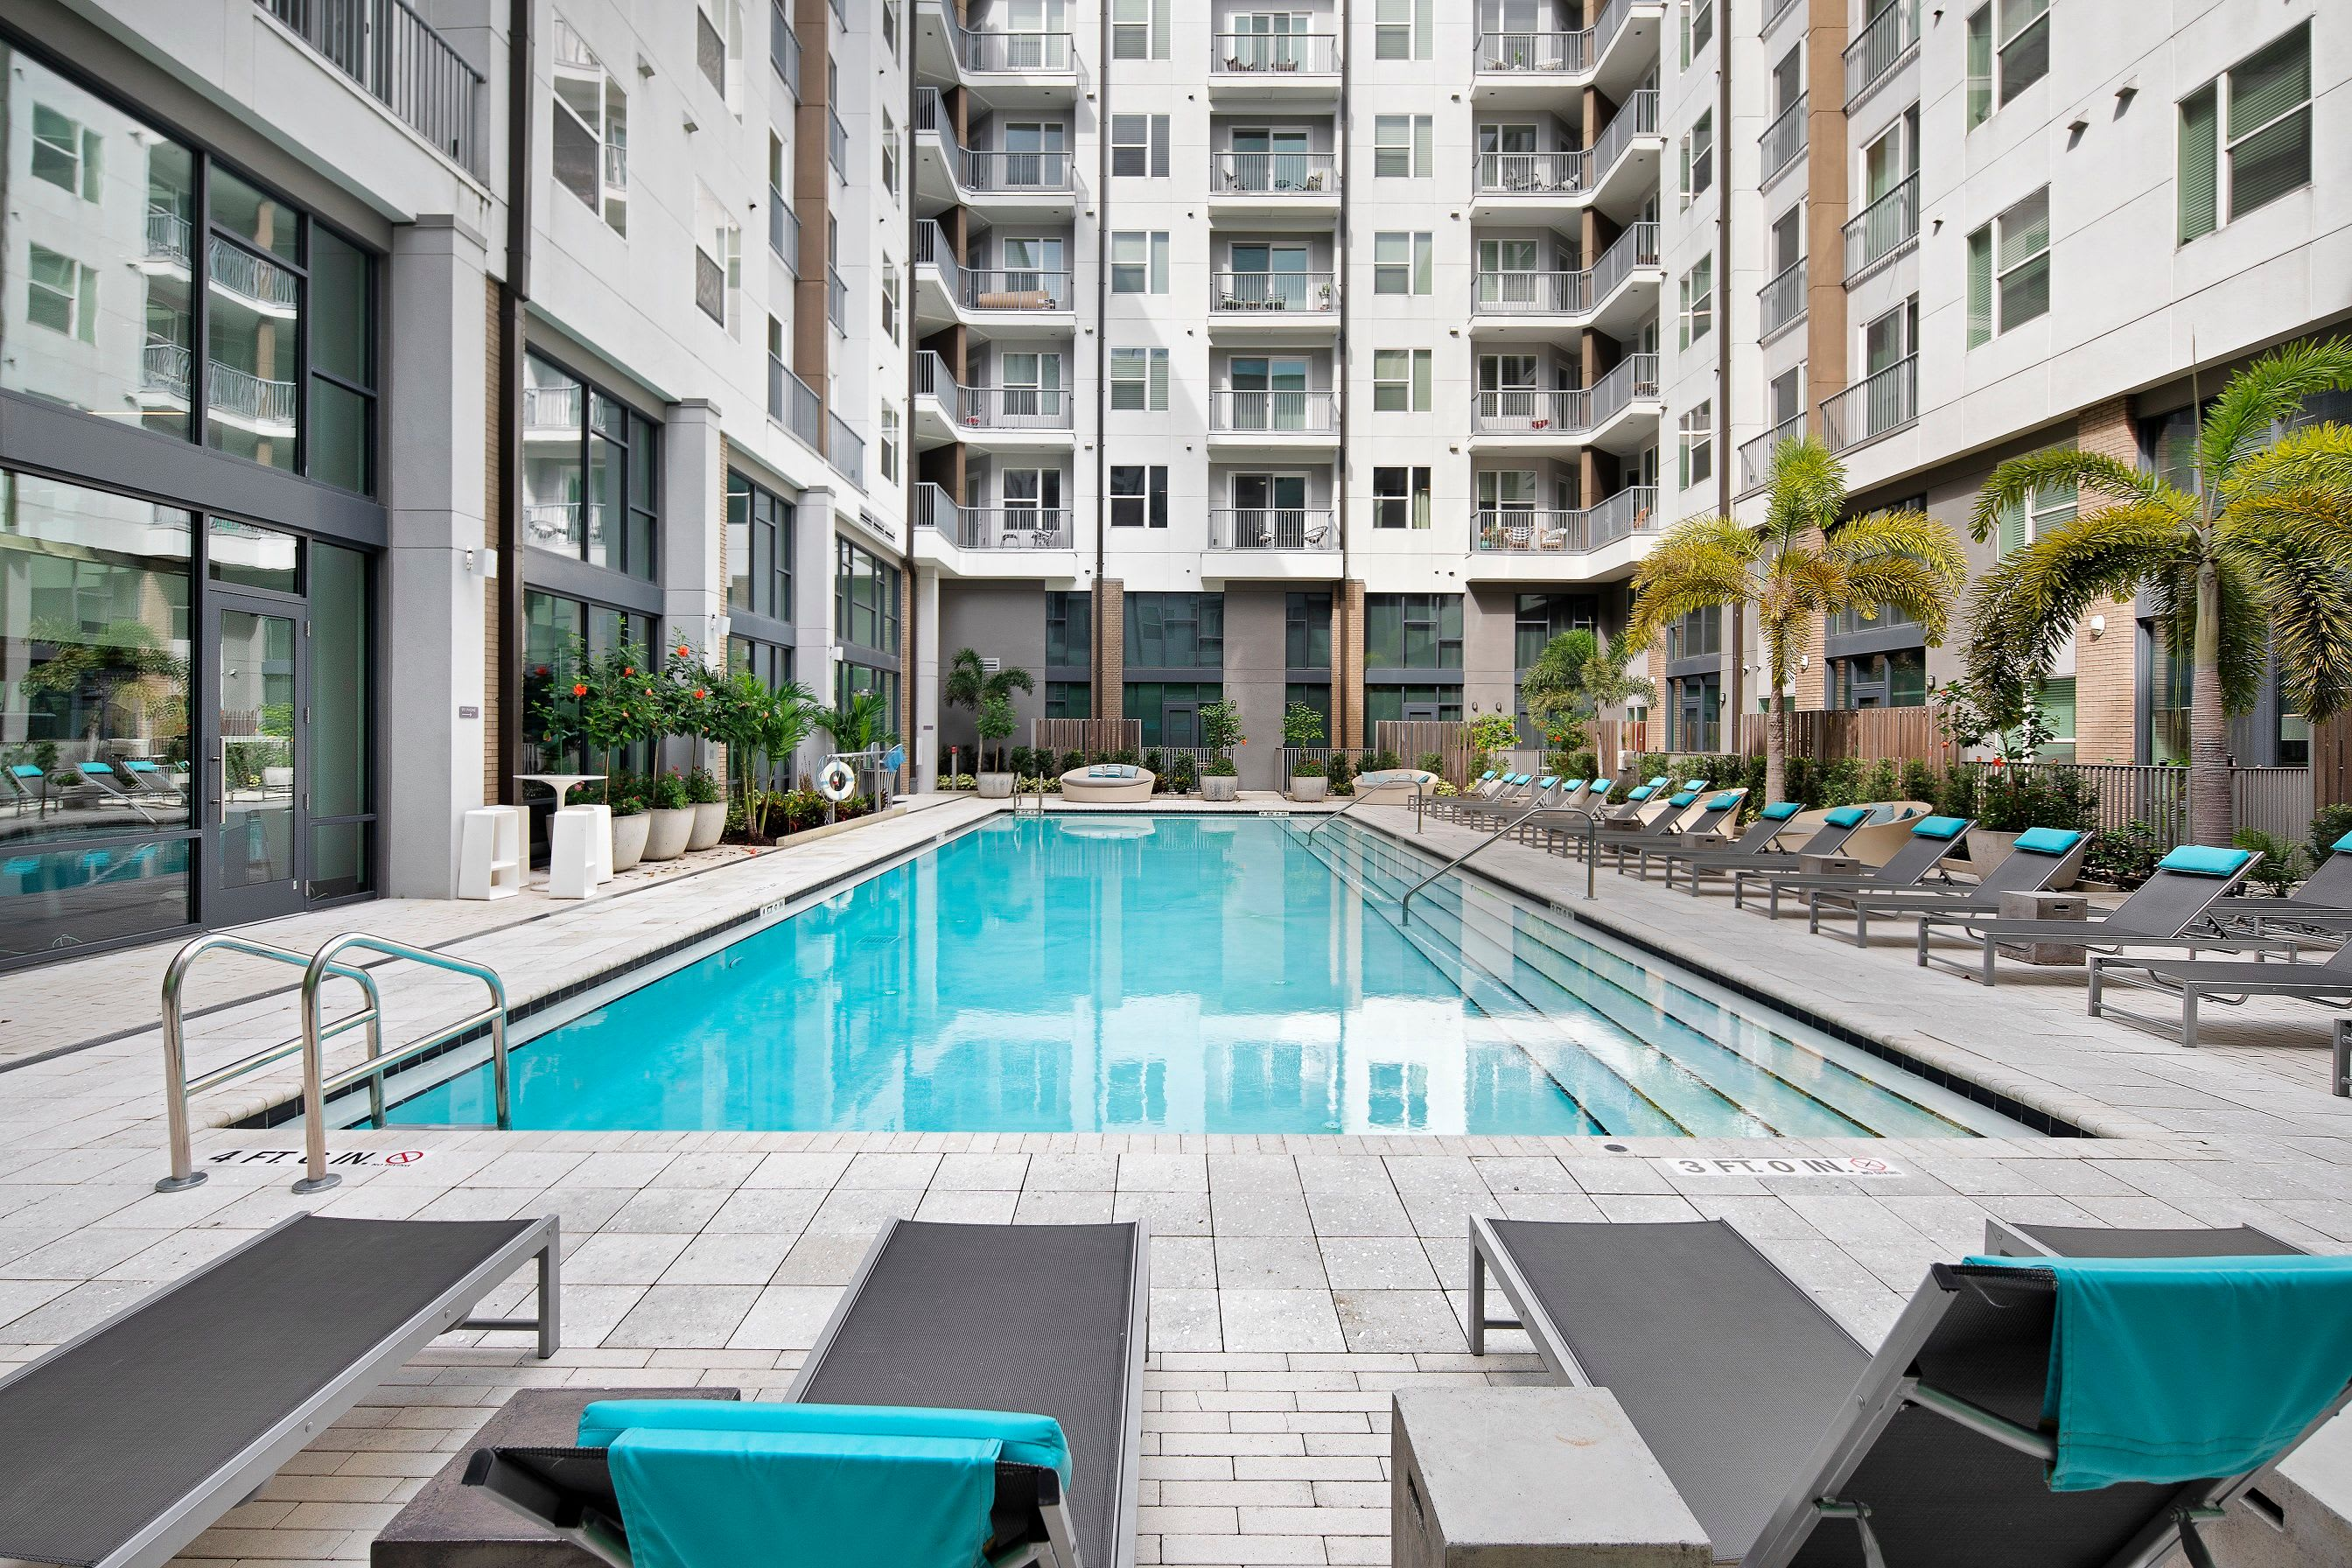 Apply to live at Central Station on Orange in Orlando, Florida